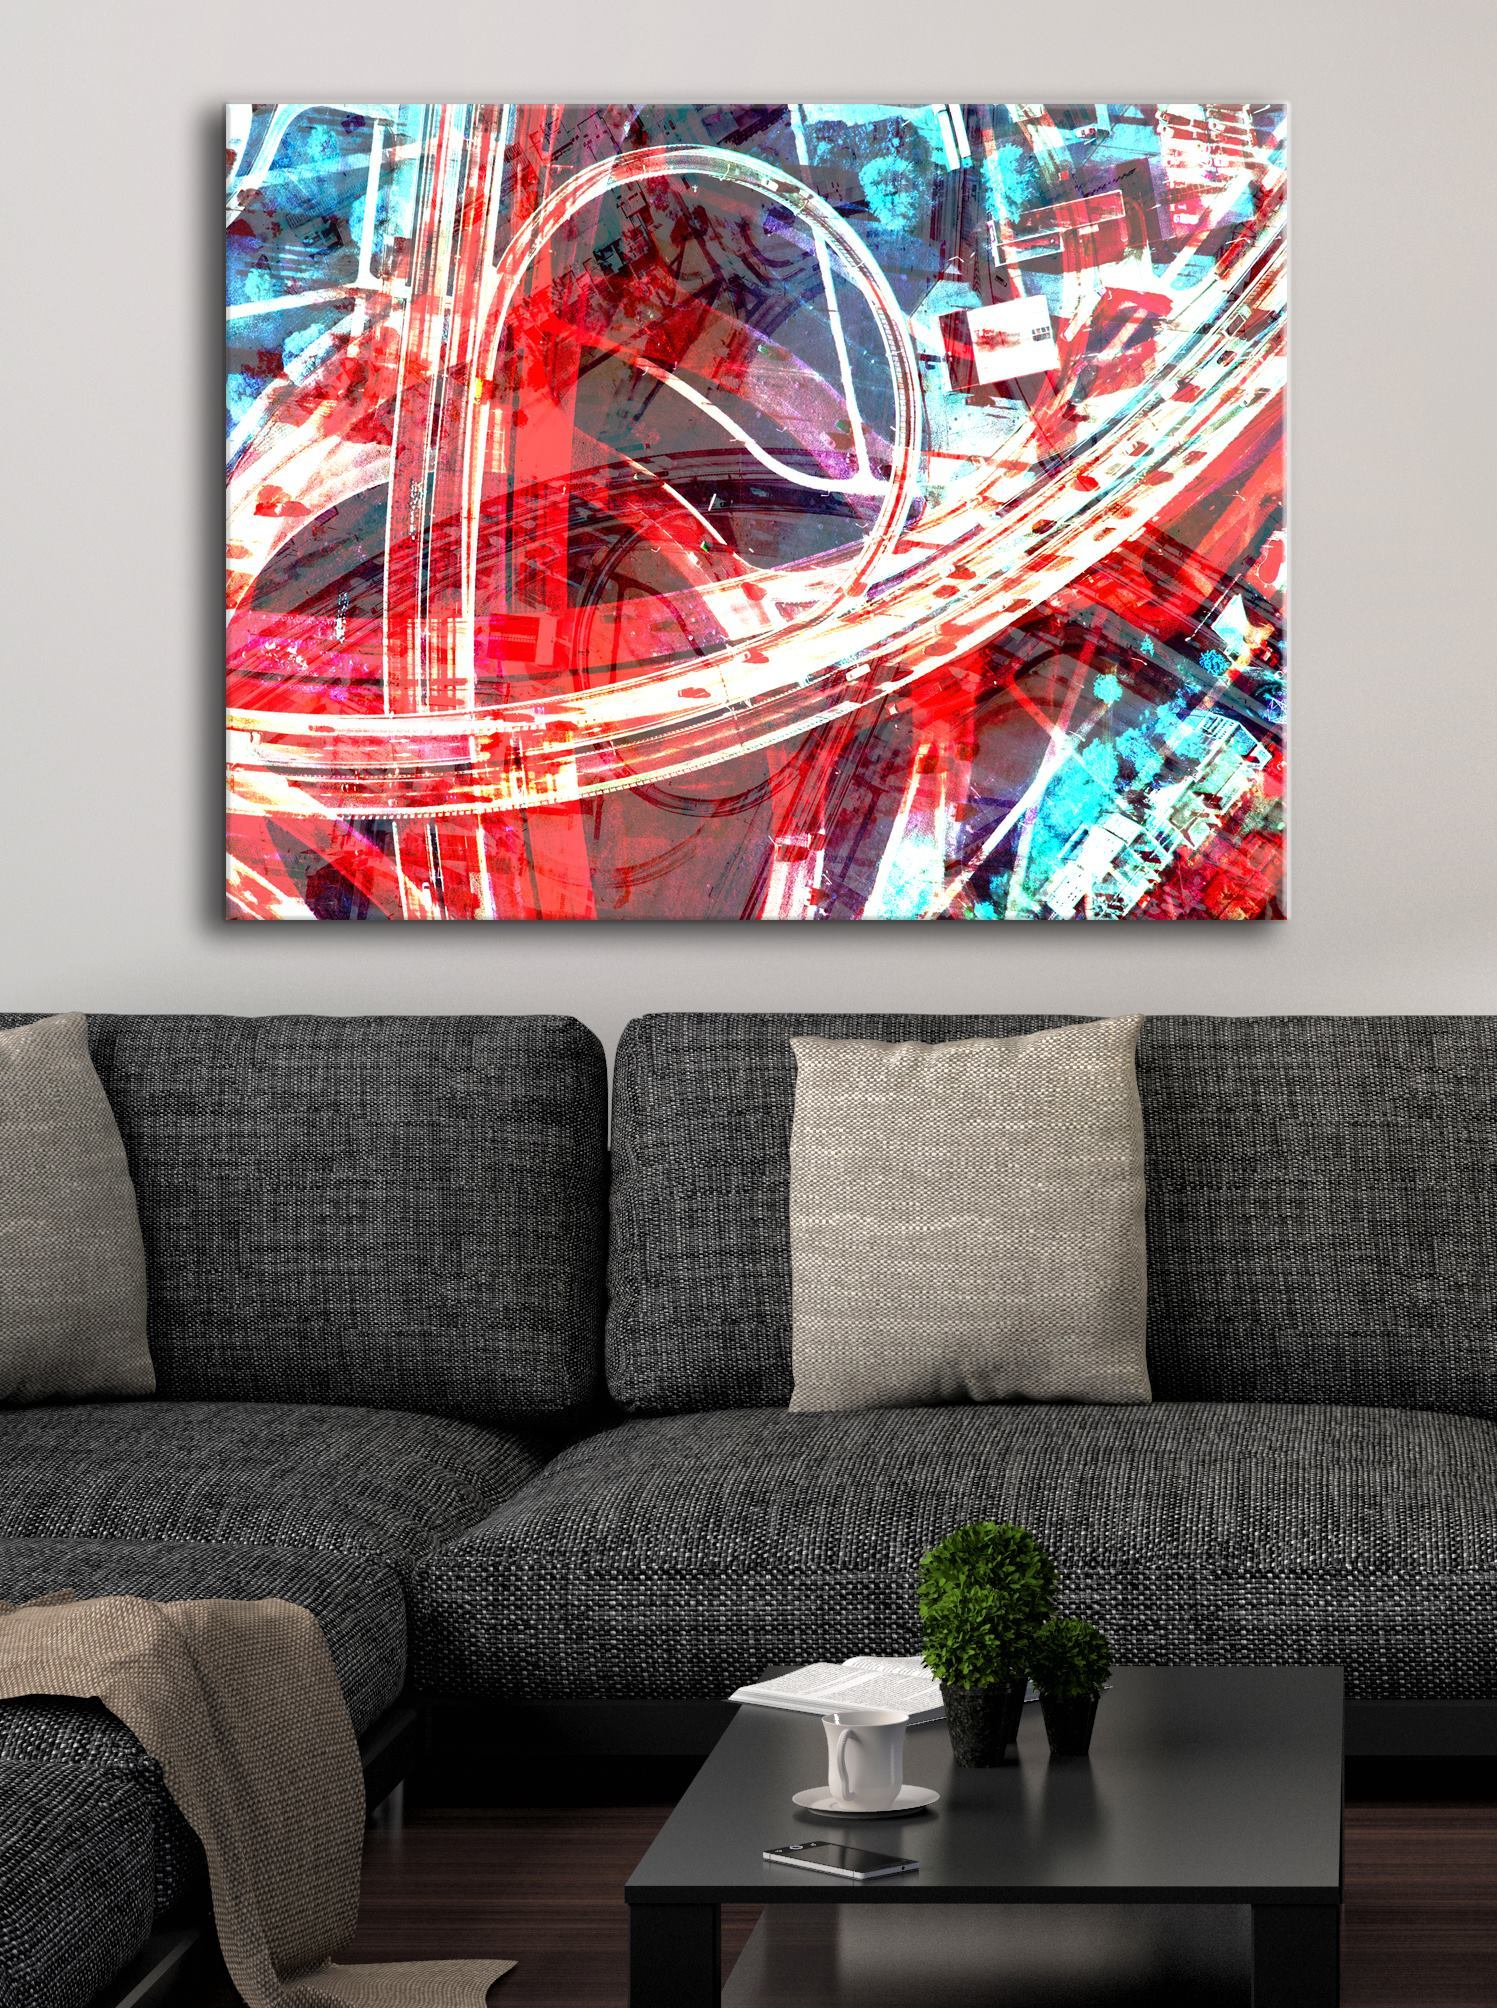 Abstract Wall Art: Red Swirls (Wood Frame Ready To Hang)